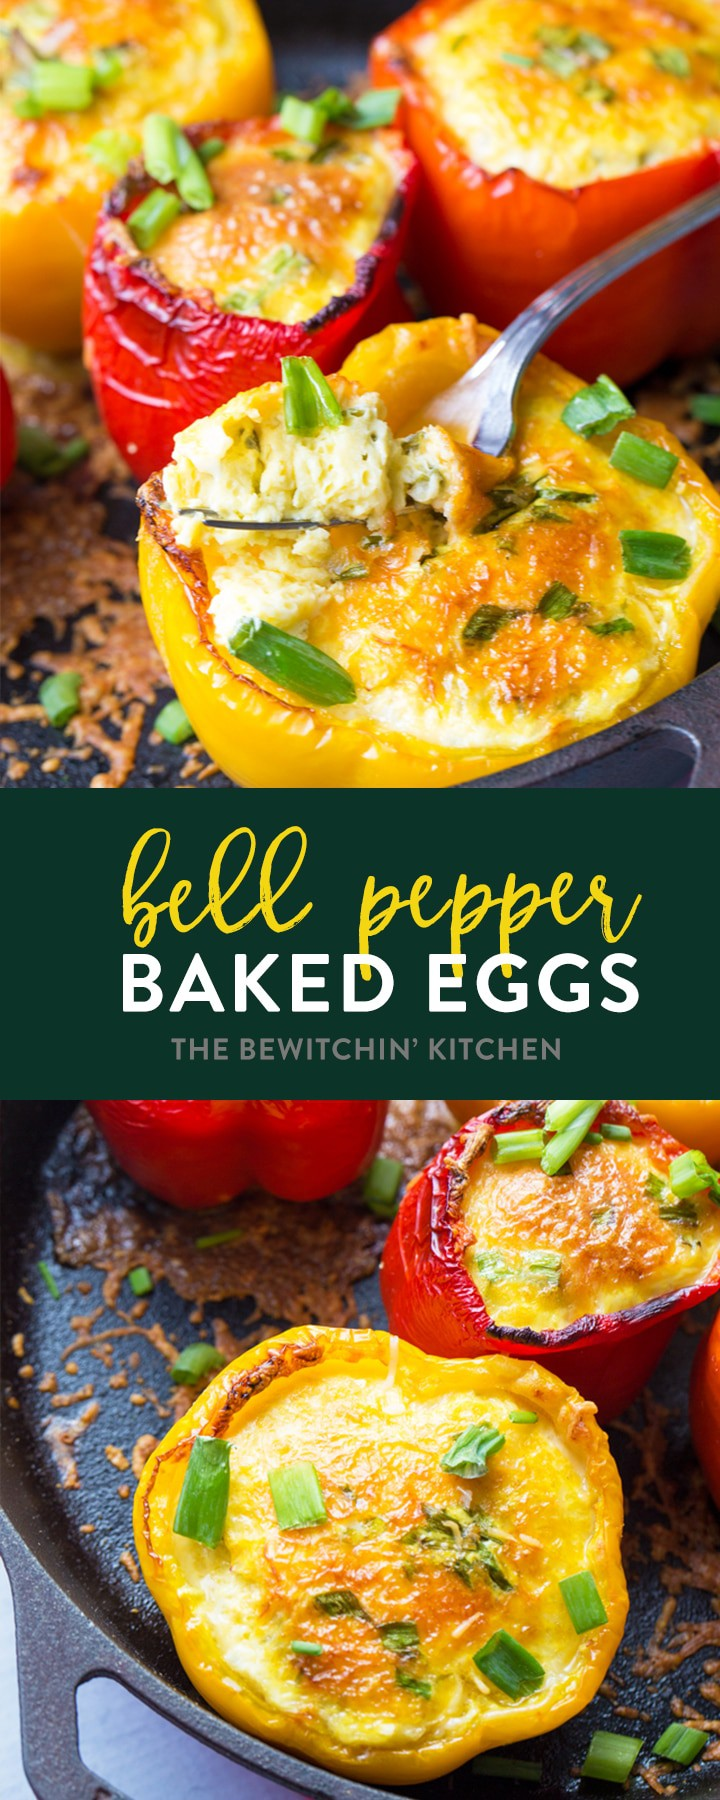 These easy baked eggs in bell peppers are the easiest breakfast recipe for camping (and easy clean up). Just shake, pour, cook, and serve! Two ingredients, healthy and fits all the diets: 21 day fix, liift4, paleo, whole30, keto, low carb, and more! Bake it in the oven or over a campfire! #ad #thebewitchinkitchen #eggstuffedpeppers #campingrecipes #campingbreakfast #breakfaststuffedpeppers #paleobreakfast #whole30recipes #liift4recipes #21dayfixrecipes